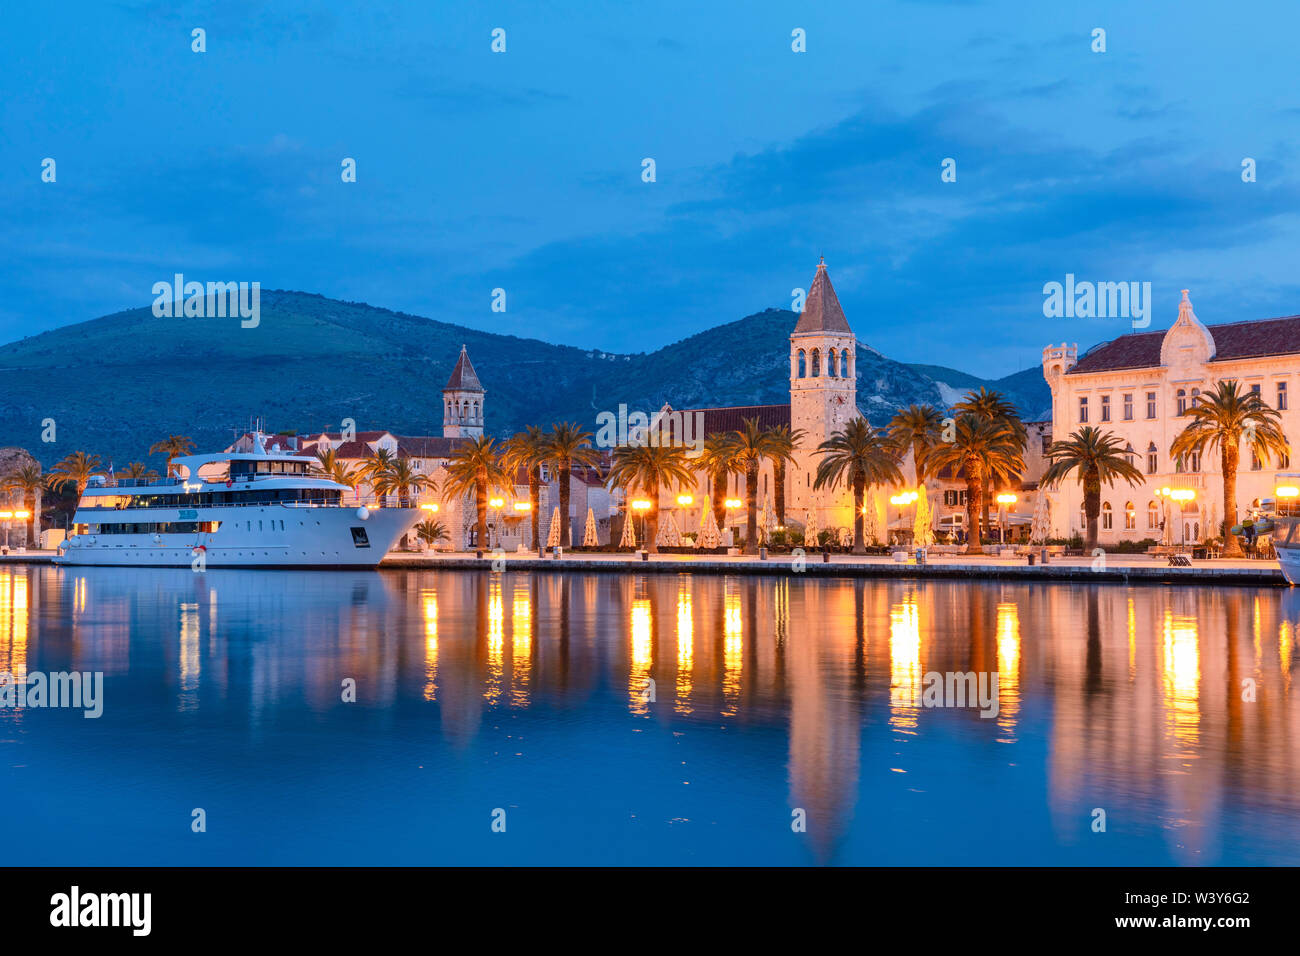 Trogir Harbour, Trogir, Dalmatian Coast, Croatia, Europe - Stock Image